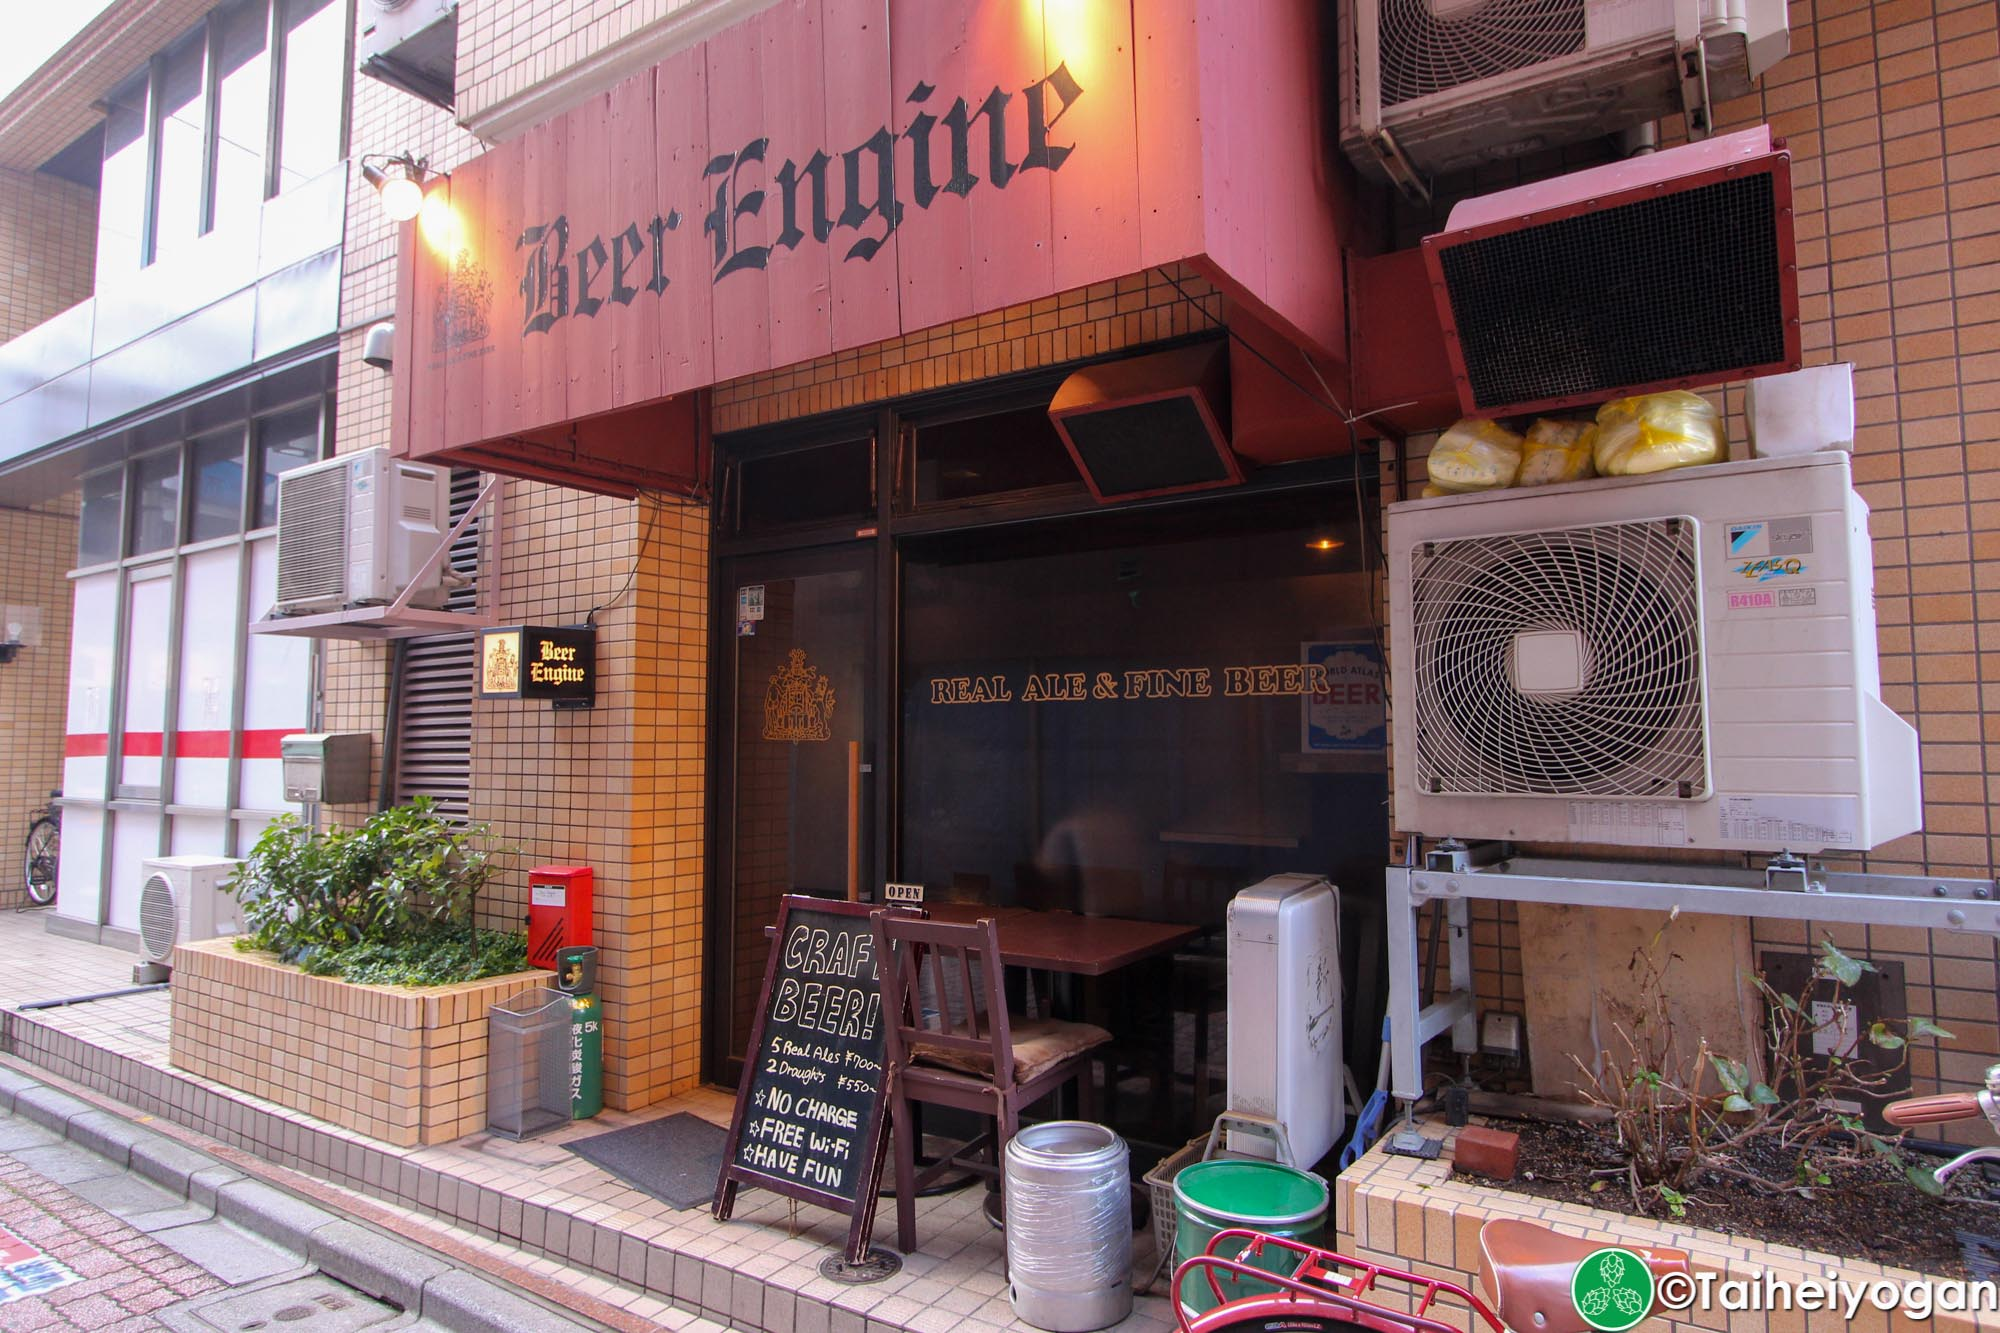 Beer Engine - Entrance